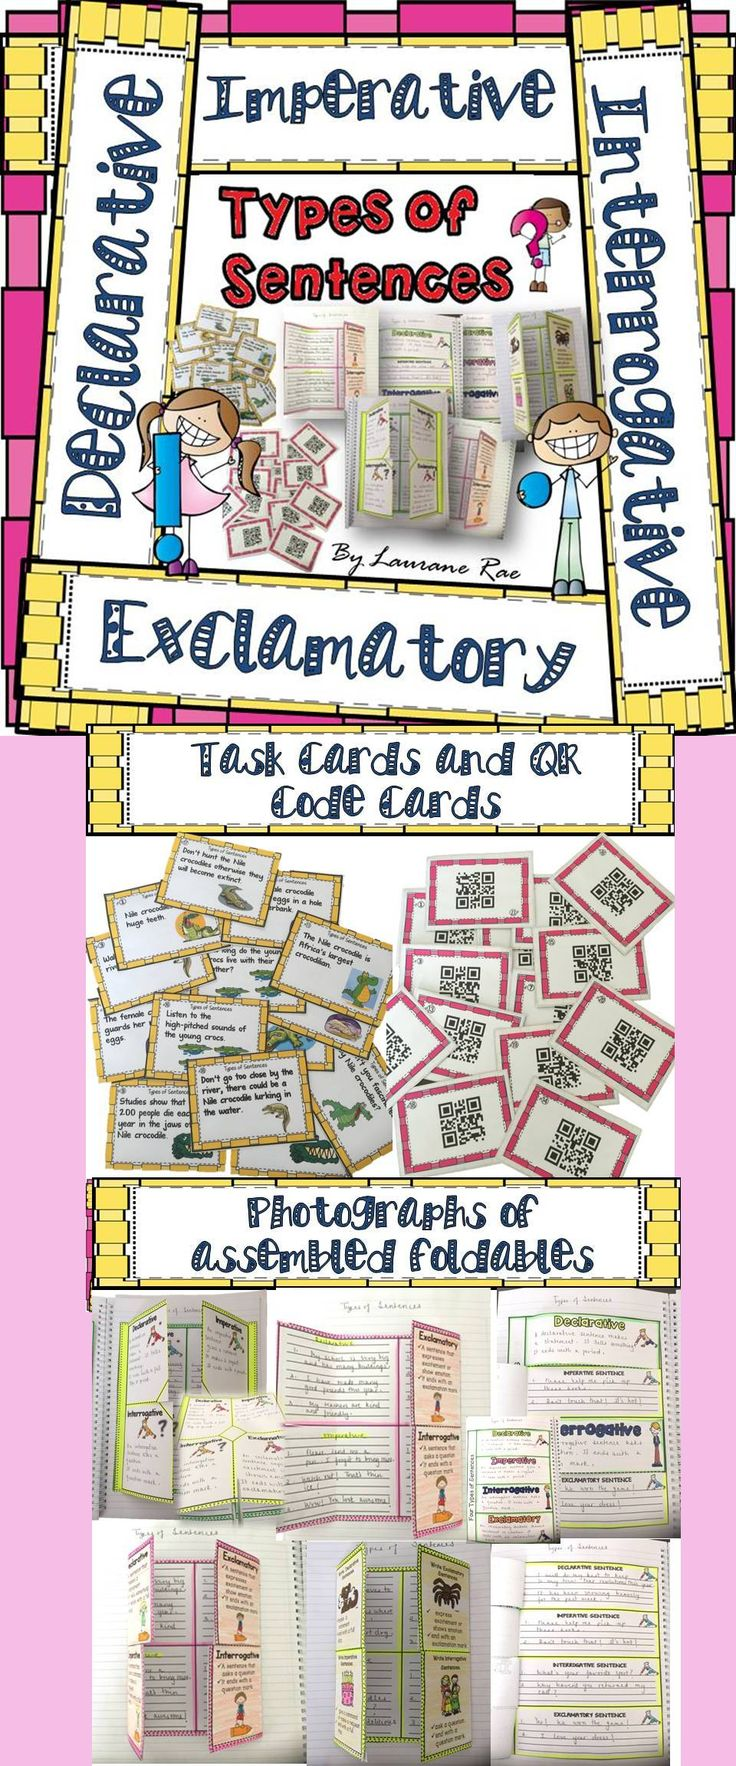 If you are looking to target differentiation in your classroom and provide your students with activities suitable to their needs, then this resource will prove handy. The 5 different interactive notebook foldables and 20 task cards and QR Code Cards focus on teaching the four types of sentences: DECLARATIVE, IMPERATIVE, INTERROGATIVE, and EXCLAMATORY. Not only will your students find this grammar lesson fun, but also meaningful.